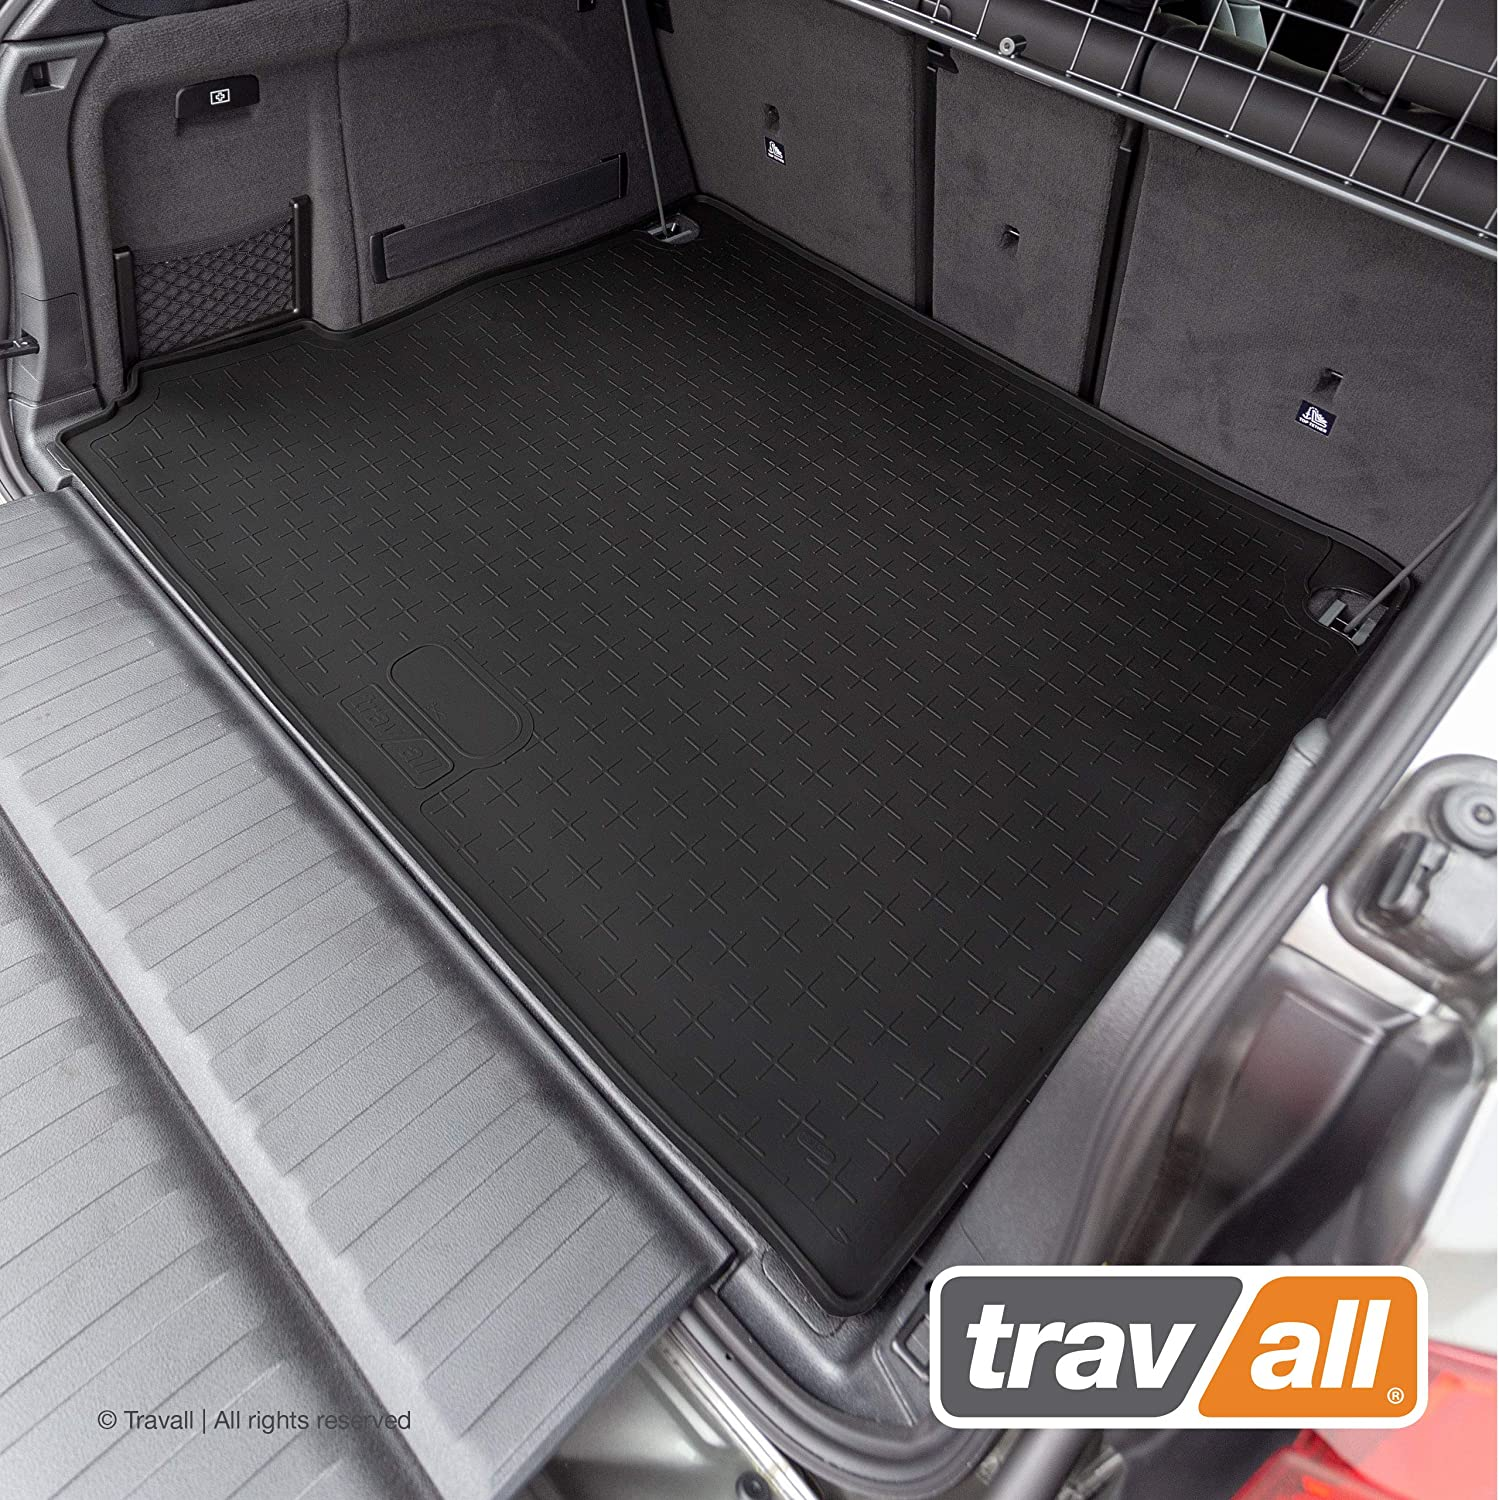 2006-2018 and BMW X5 M 2010-2018 Travall Liner Compatible with BMW X5 All-Weather Black Rubber Trunk Mat Liner TBM1049